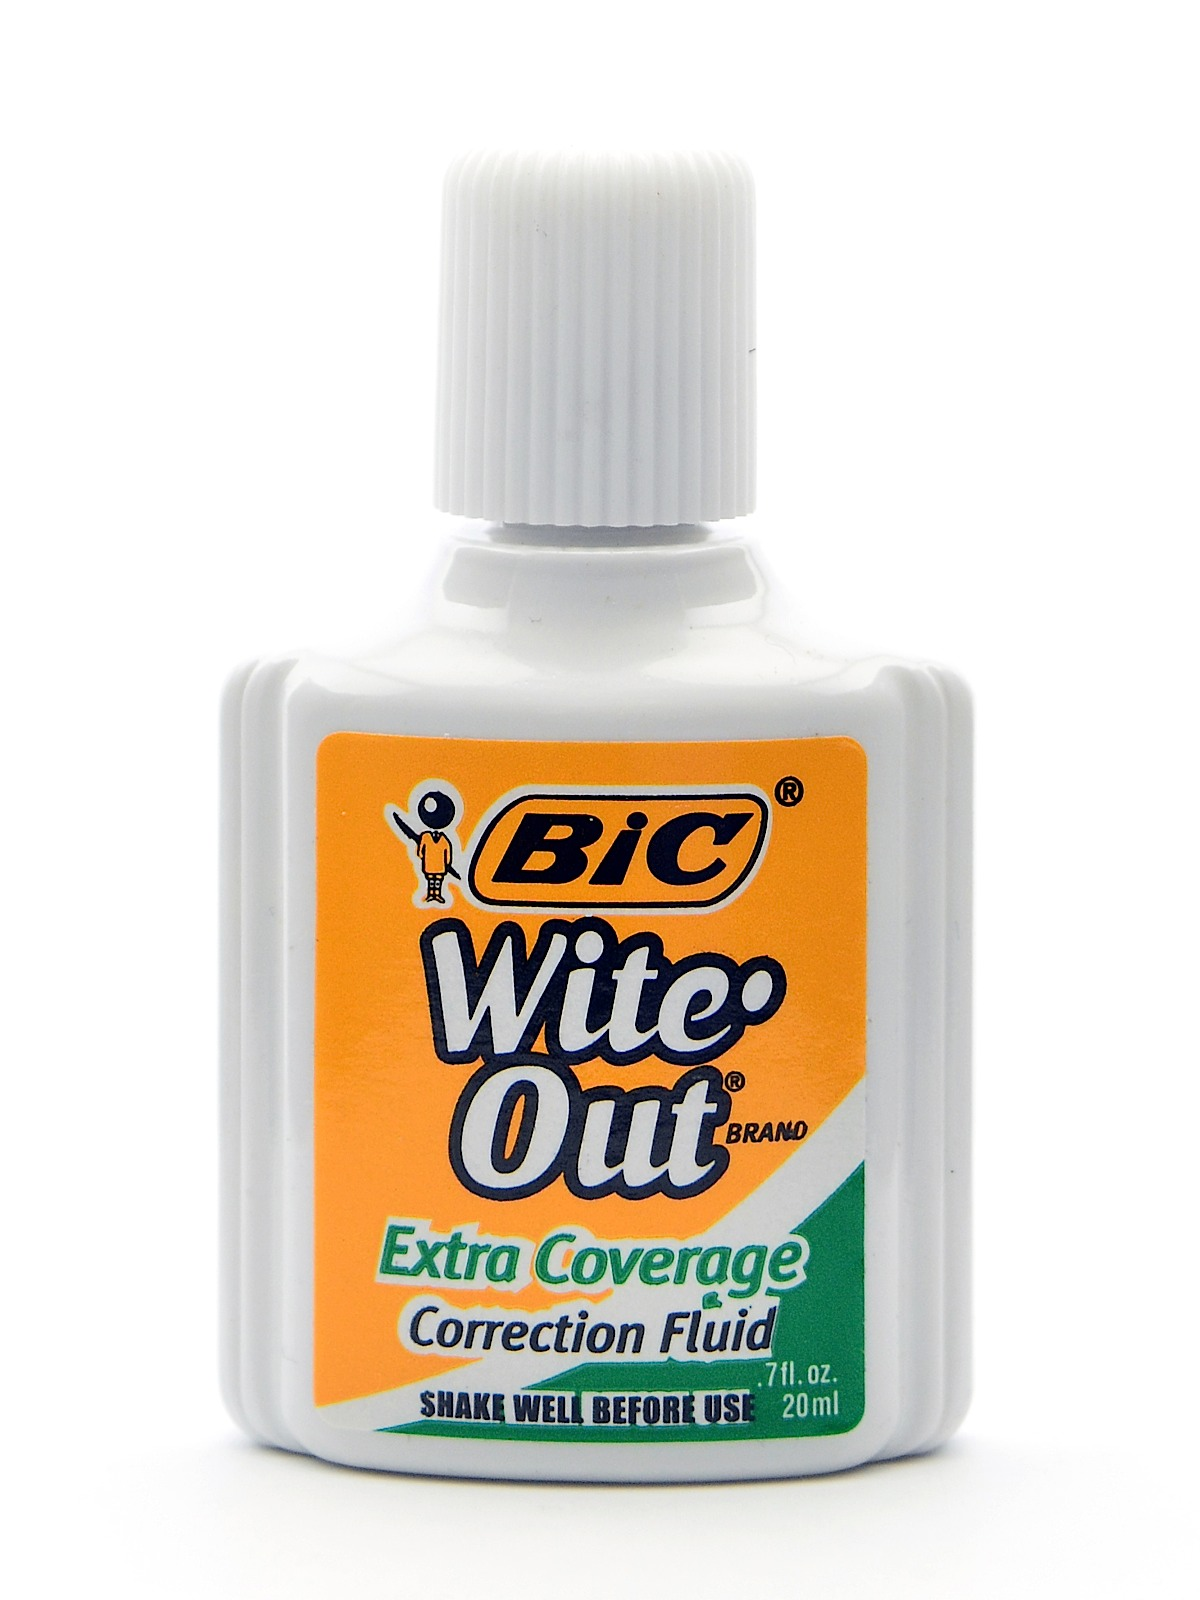 Wite-Out Extra Coverage Correction Fluid